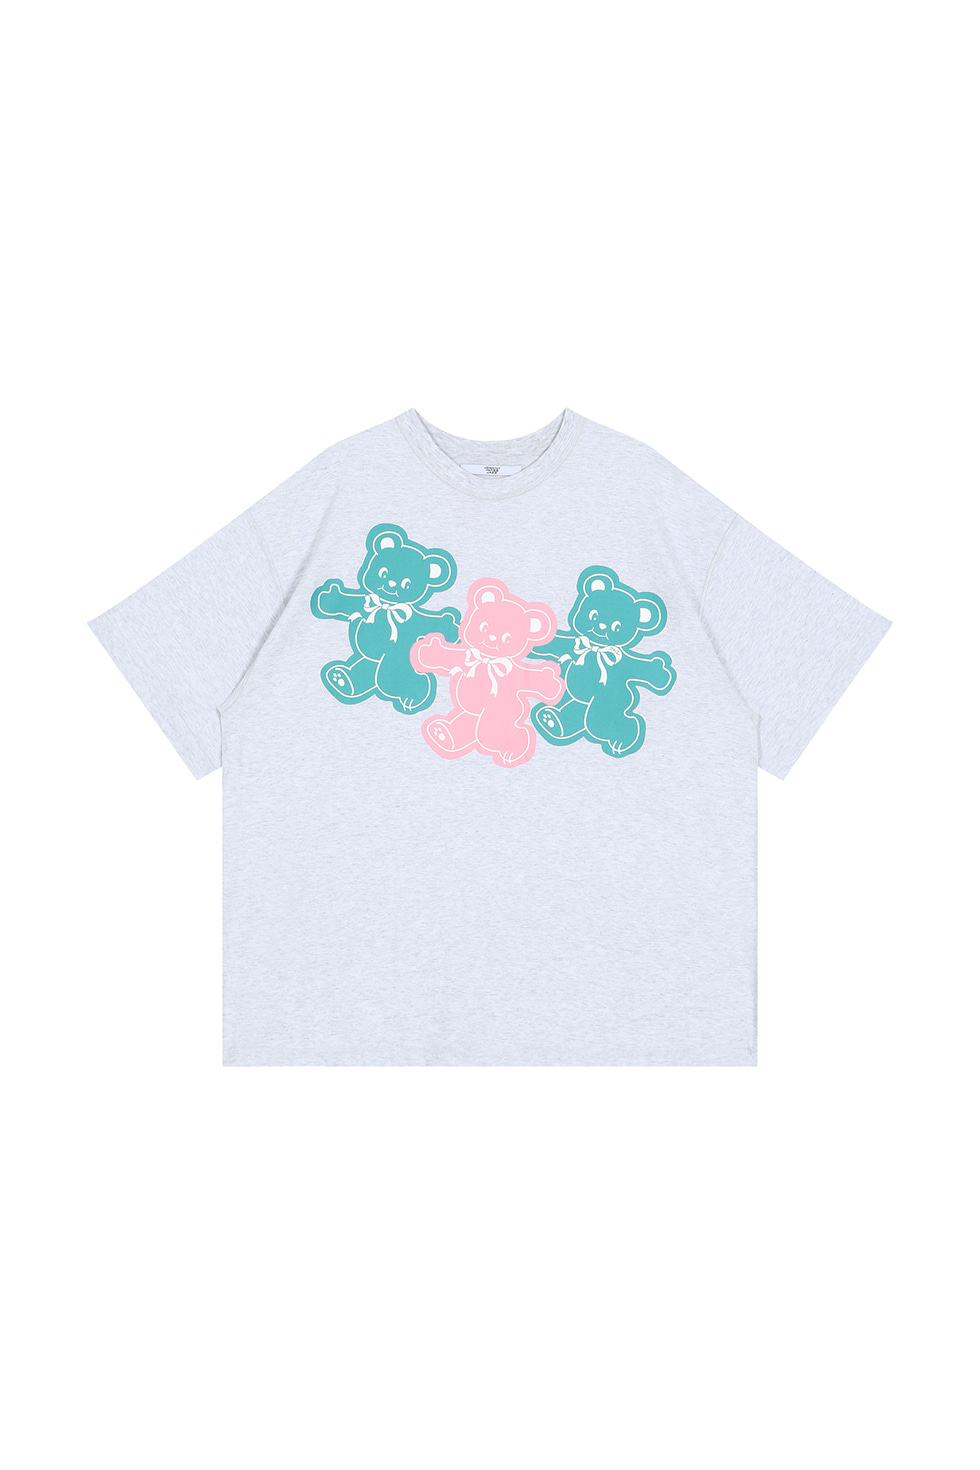 [4월 16일 입고]THREE BEARS T-SHIRTS - GREY